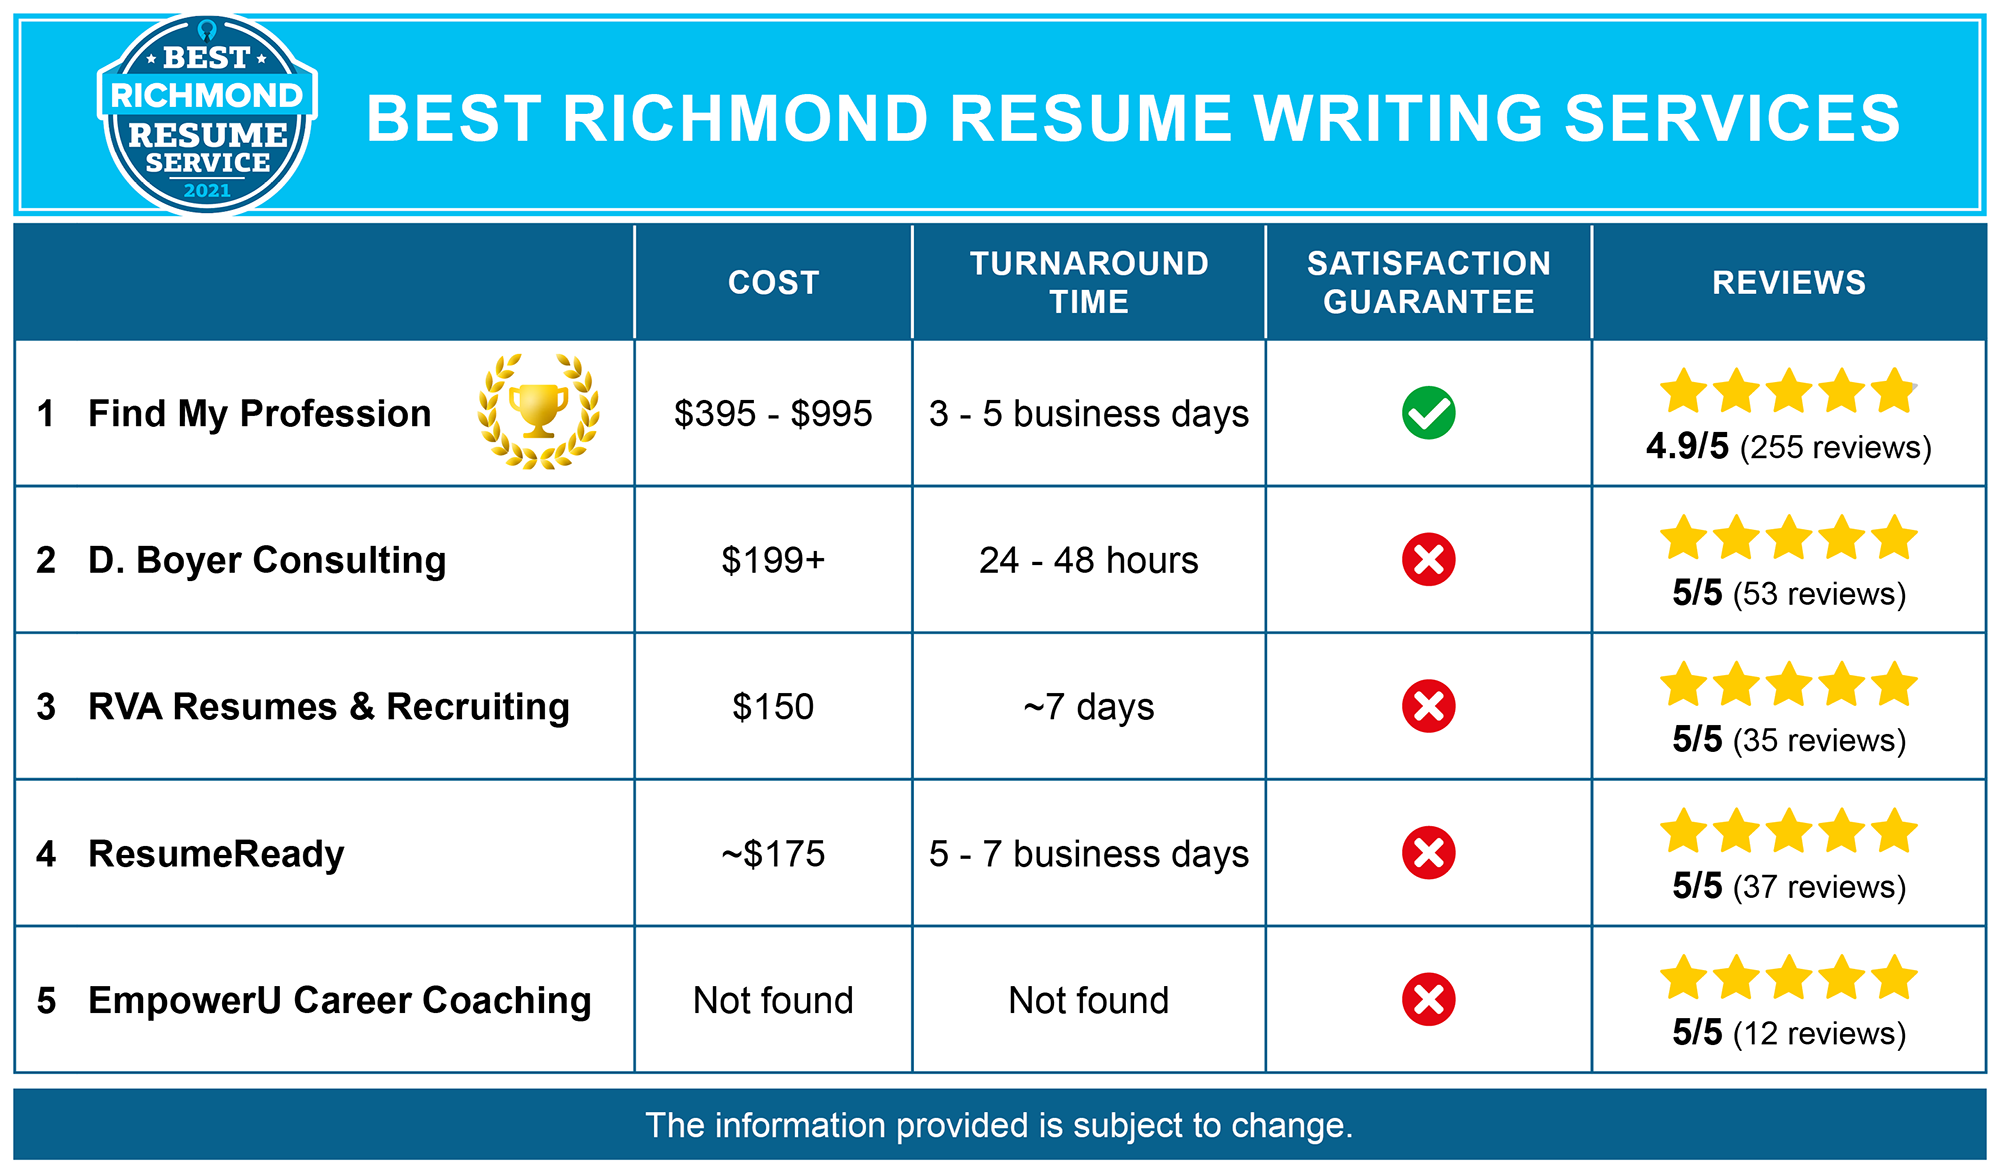 5 Best Resume Writing Services in Richmond, VA